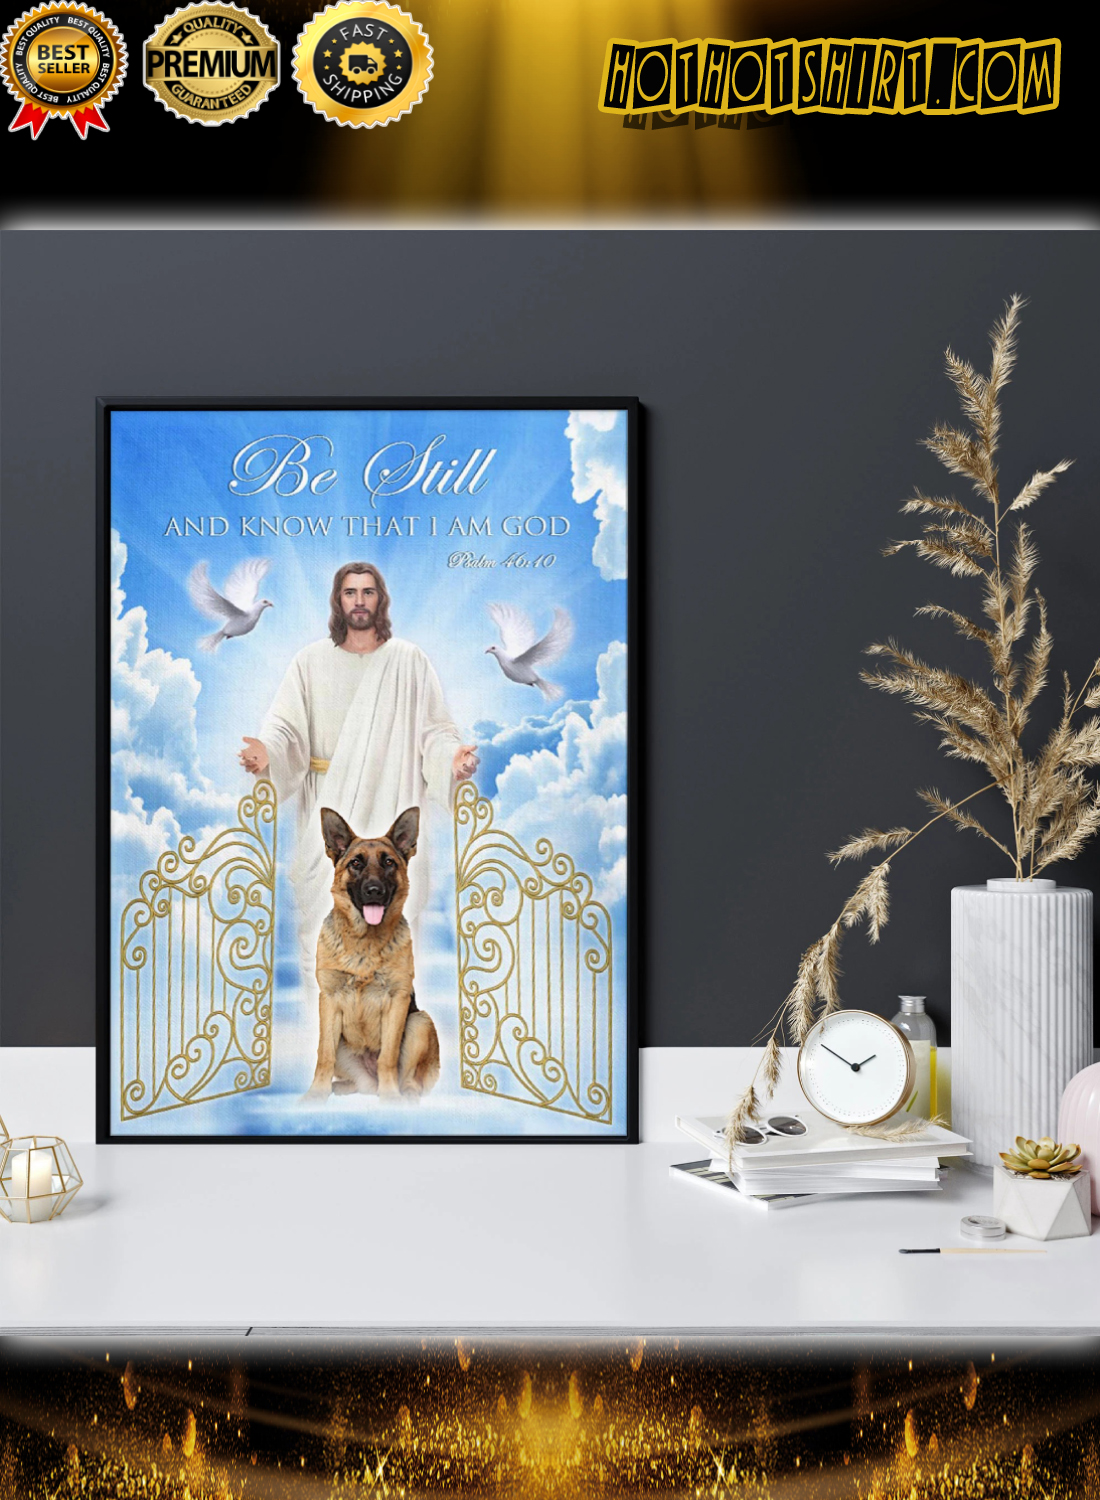 German Shepherd Be still and know that i am god poster